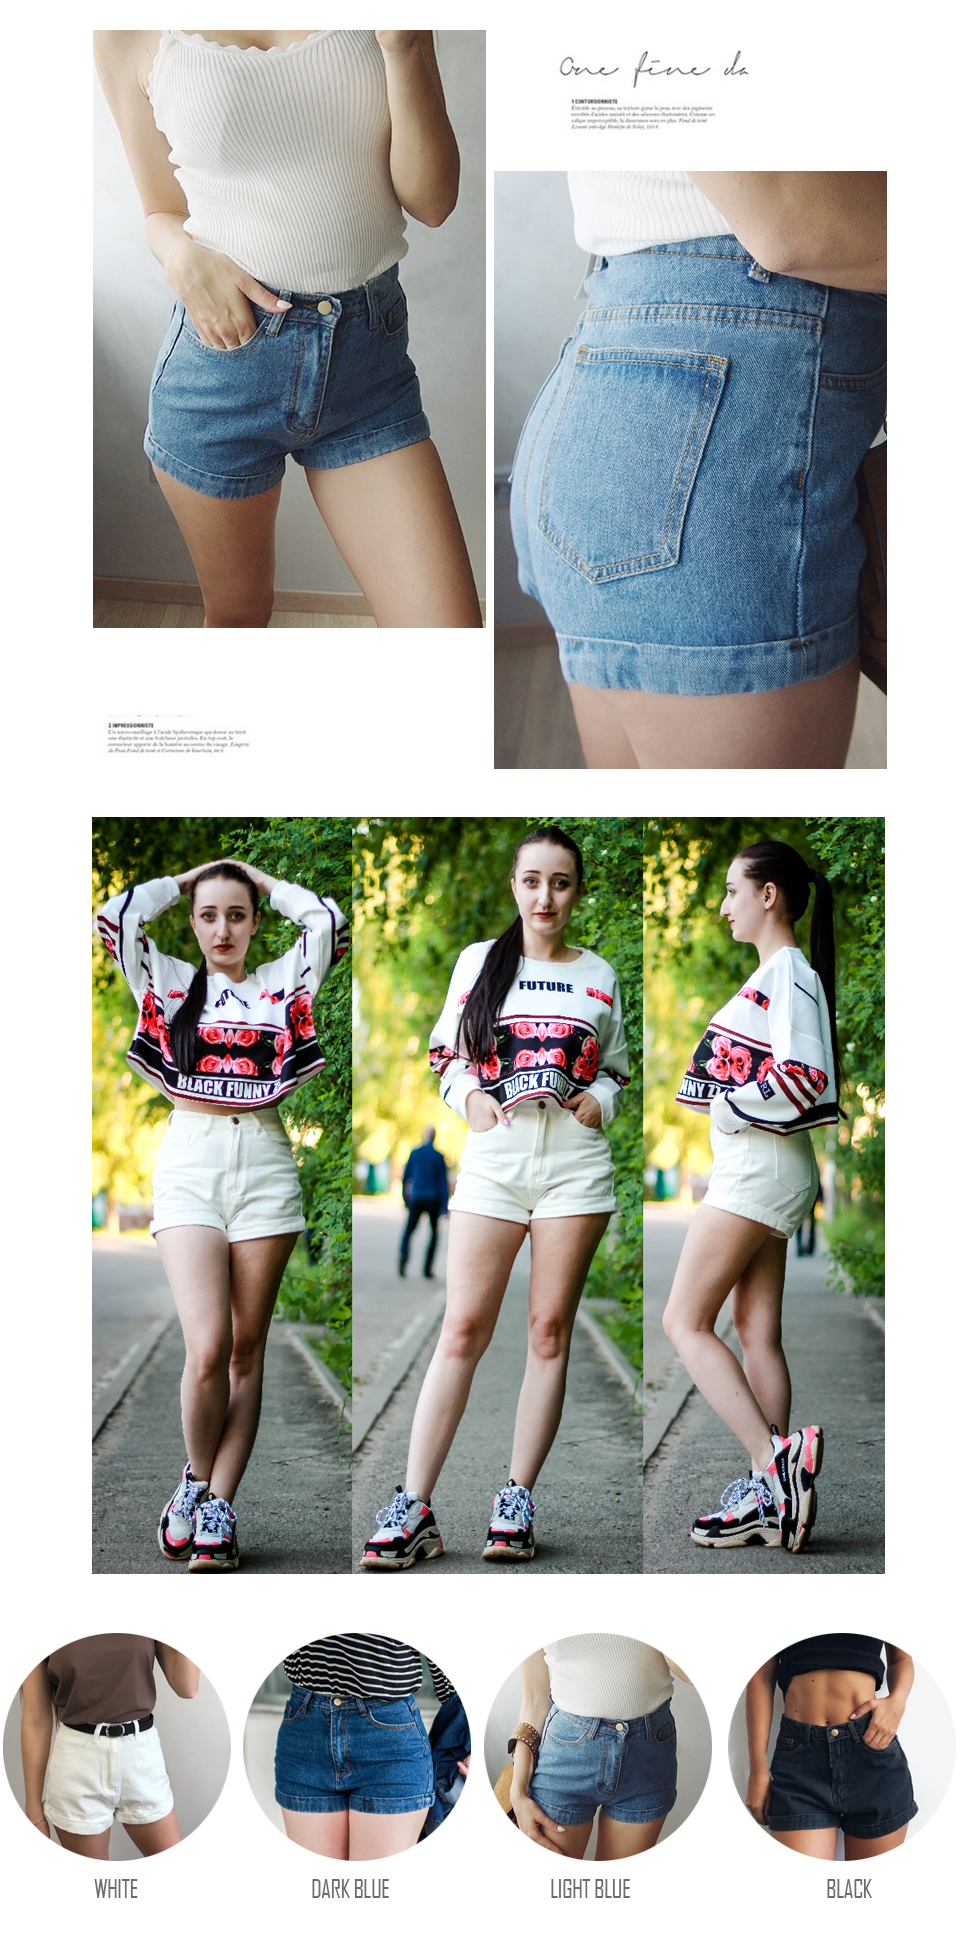 HTB1W0XQrfuSBuNkHFqDq6xfhVXac - GOPLUS High Waist Denim Shorts for Women Vintage Sexy Brand Shorts Jeans Women Denim Shorts Feminino Slim Hip Plus Size C3627